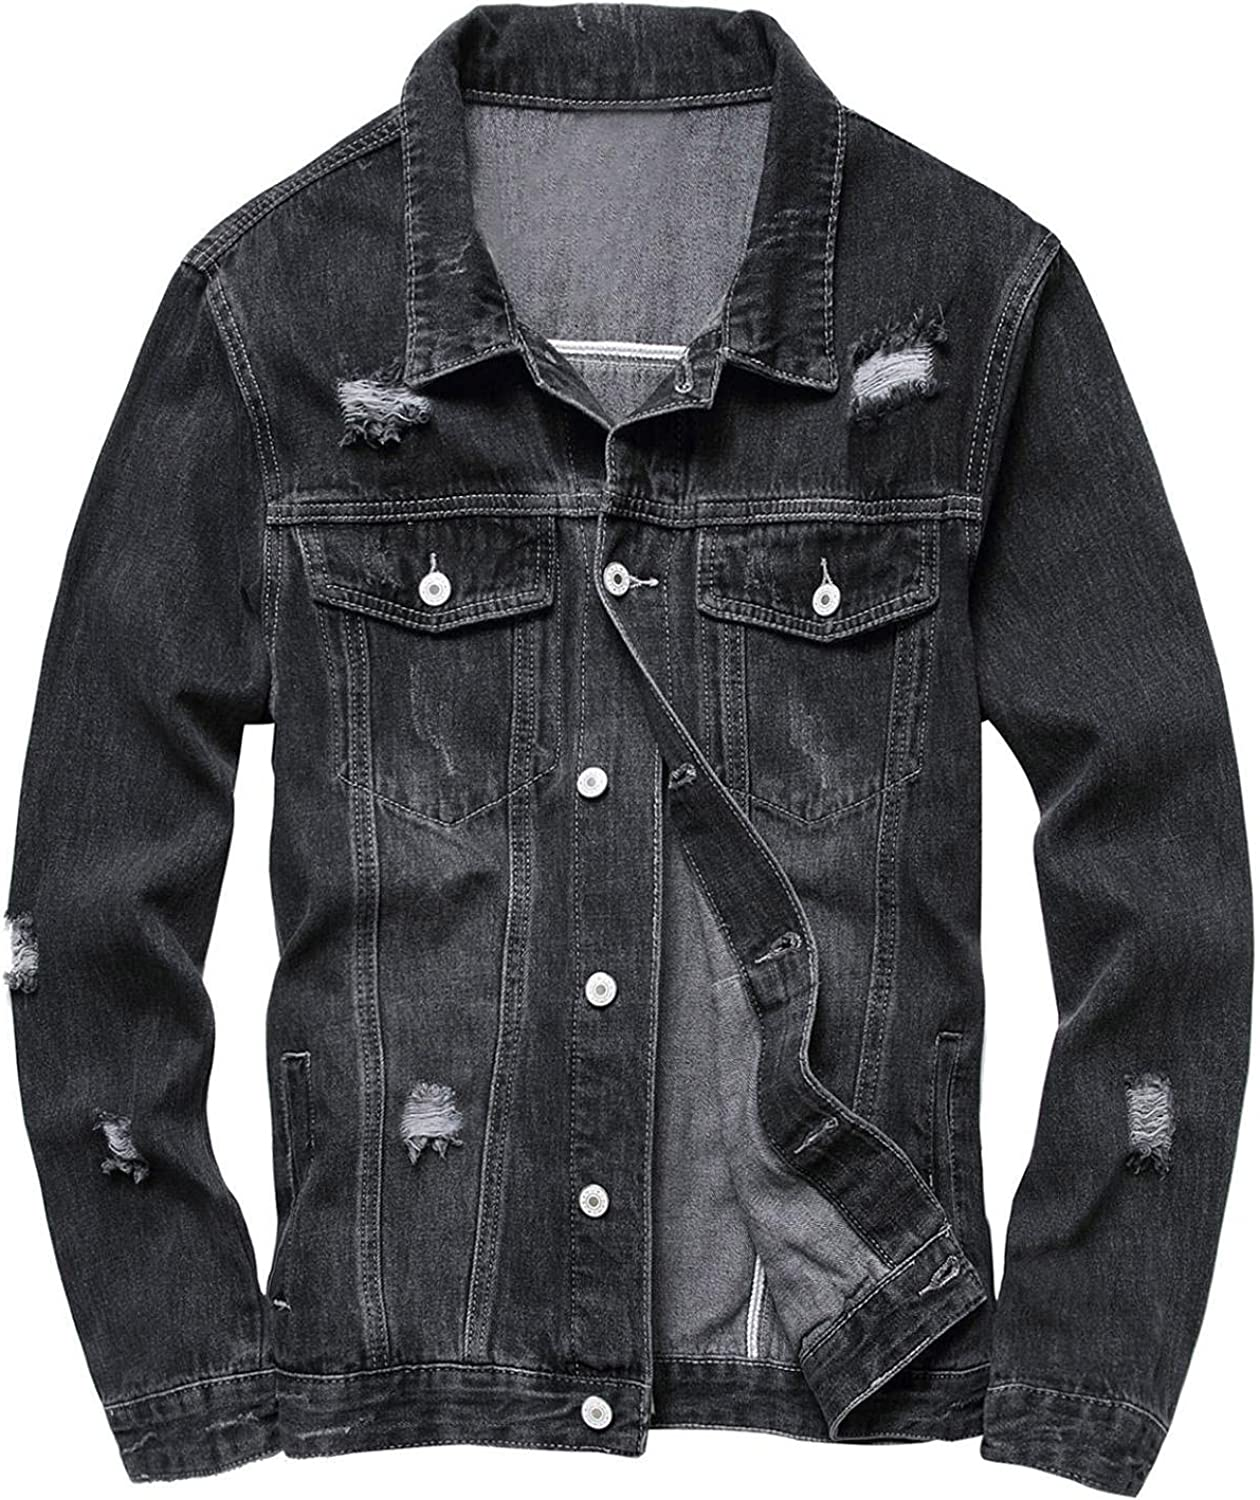 Ripped Jeans Jackets for Men Distressed Denim Trucker Jacket Washed Hiphop Vintage Coat Button Front Casual Blouse